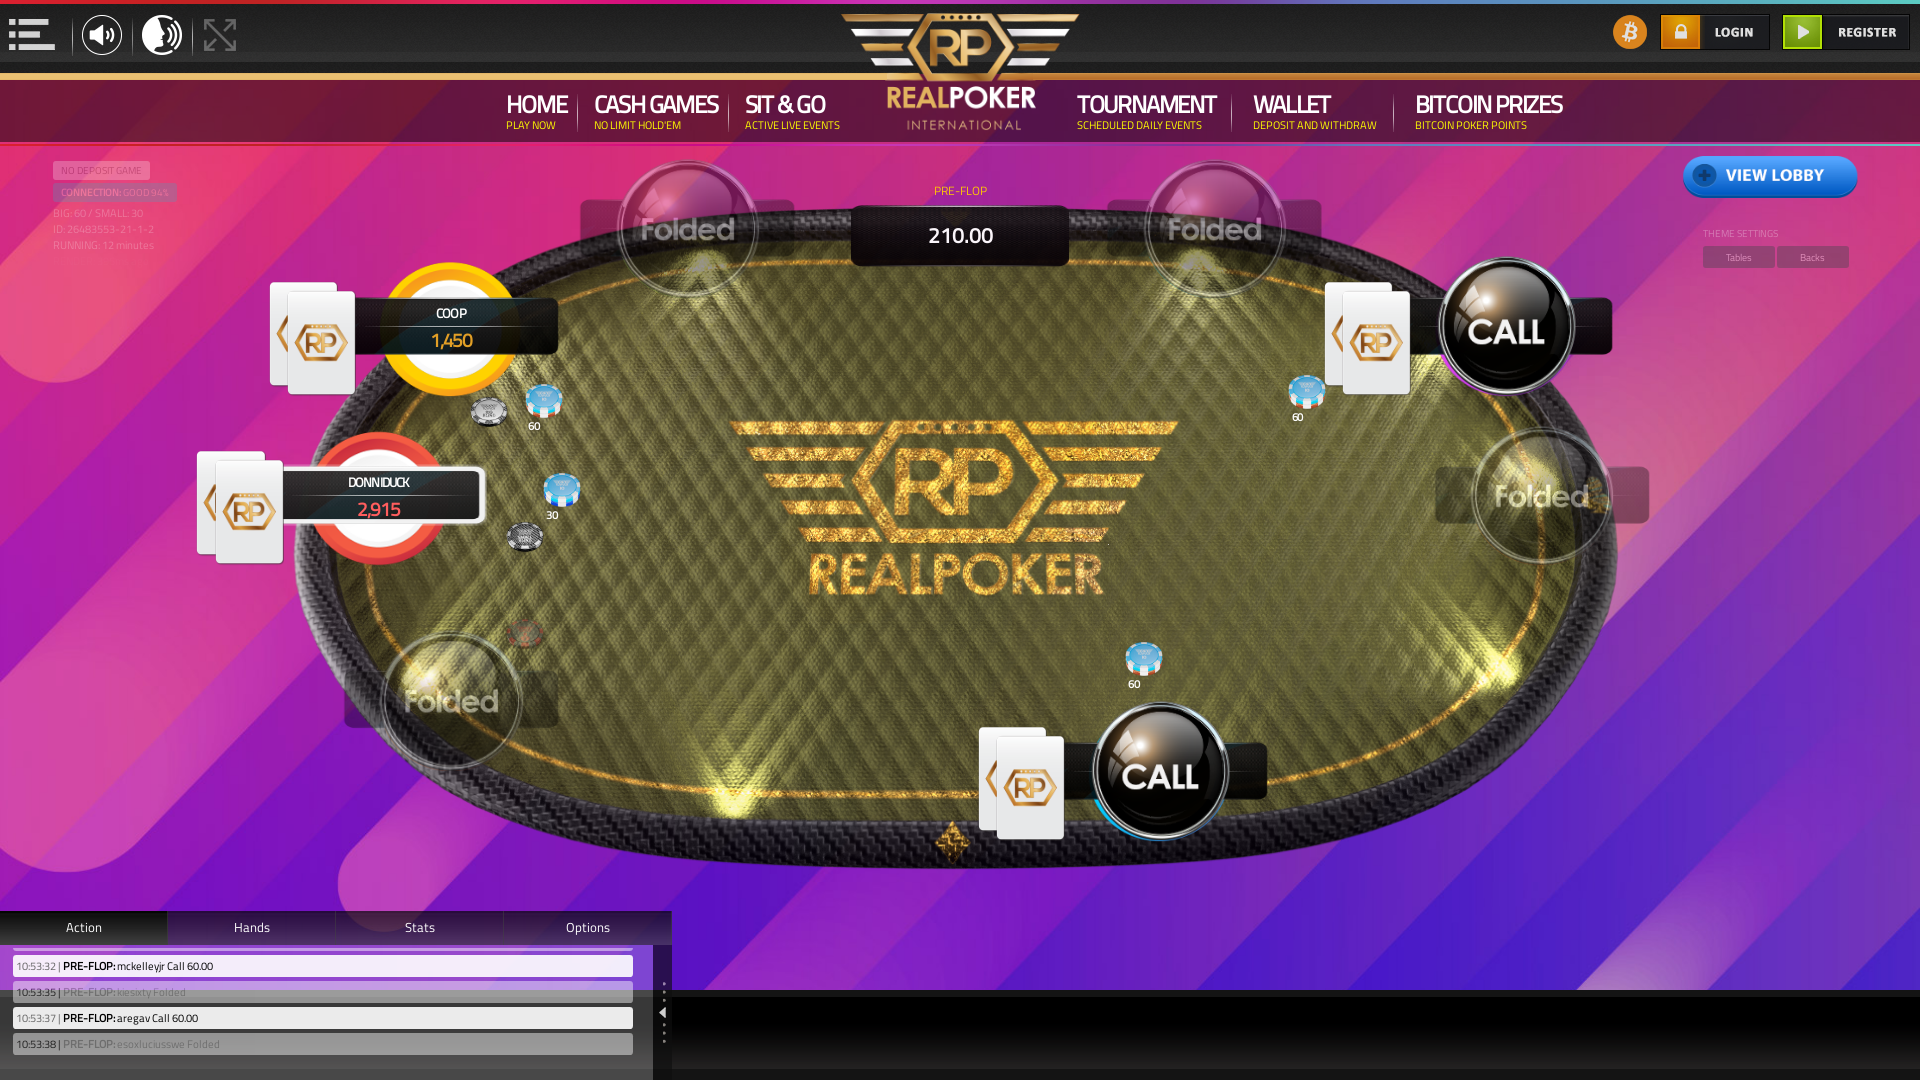 esoxluciusswe playing poker bitcoin